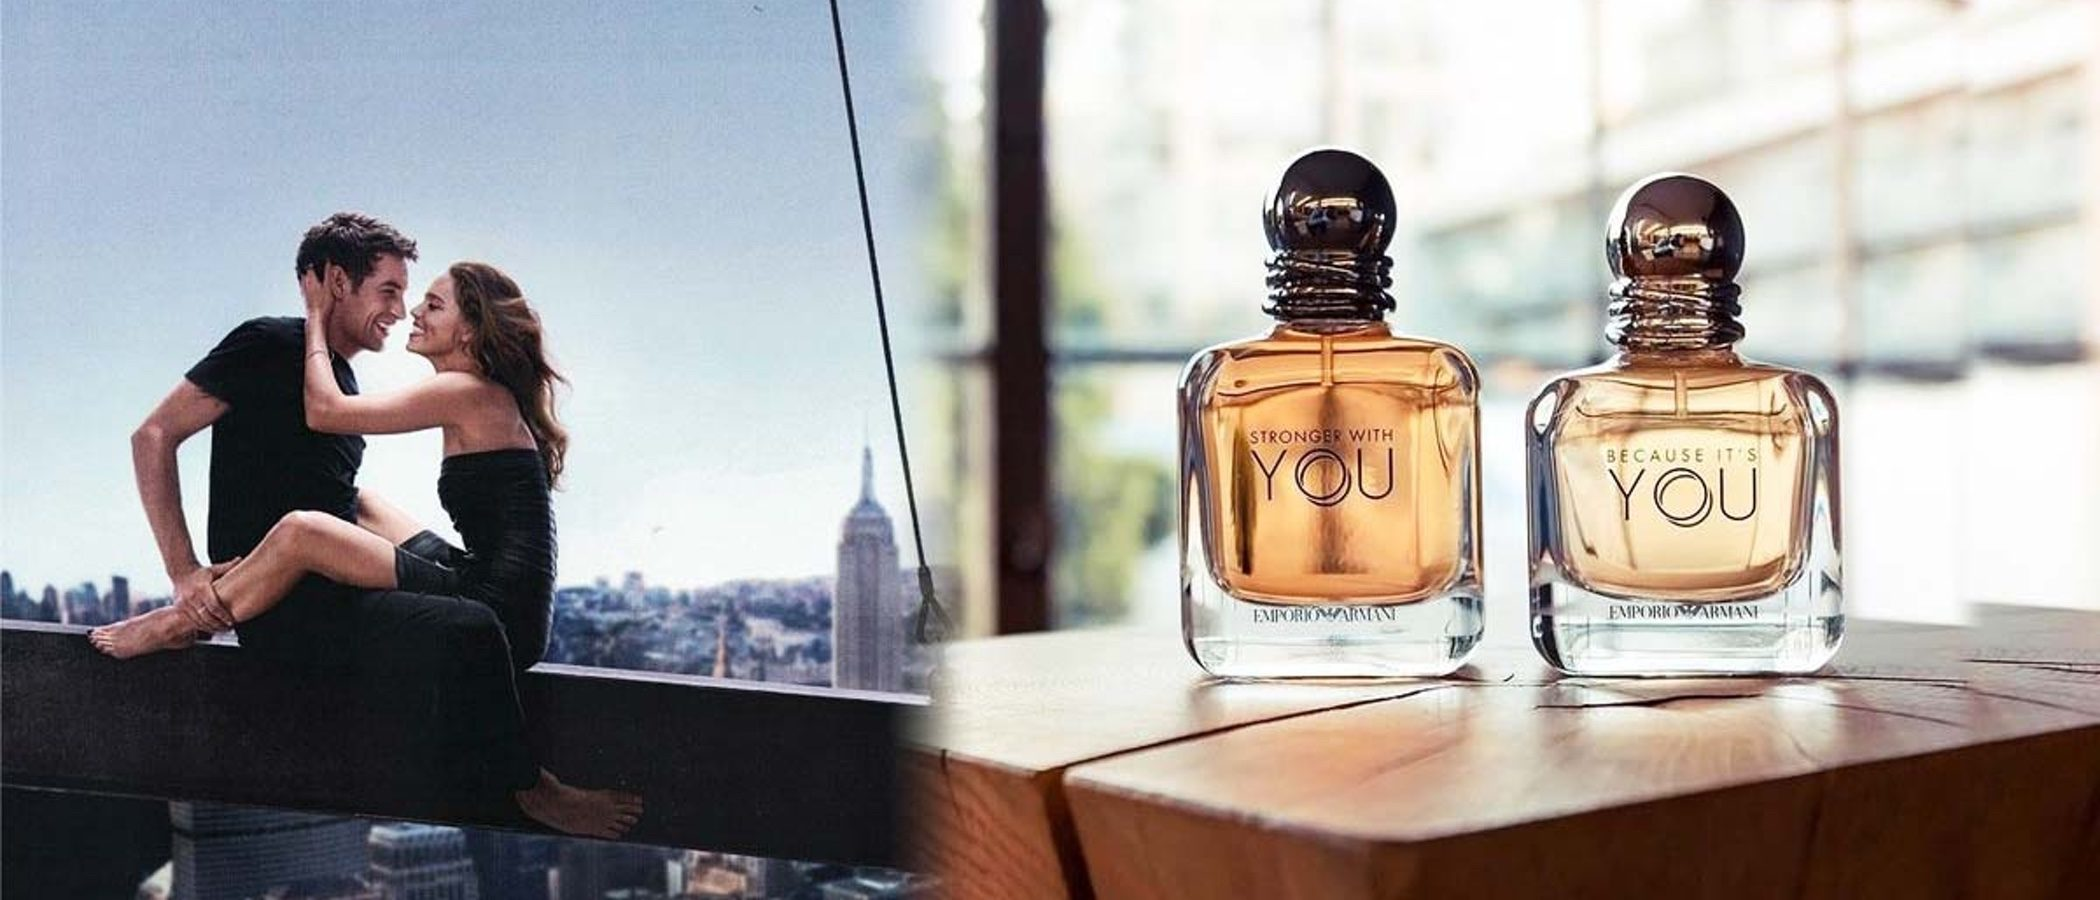 'Because it's you', la fragancia romántica y jovial de Emporio Armani